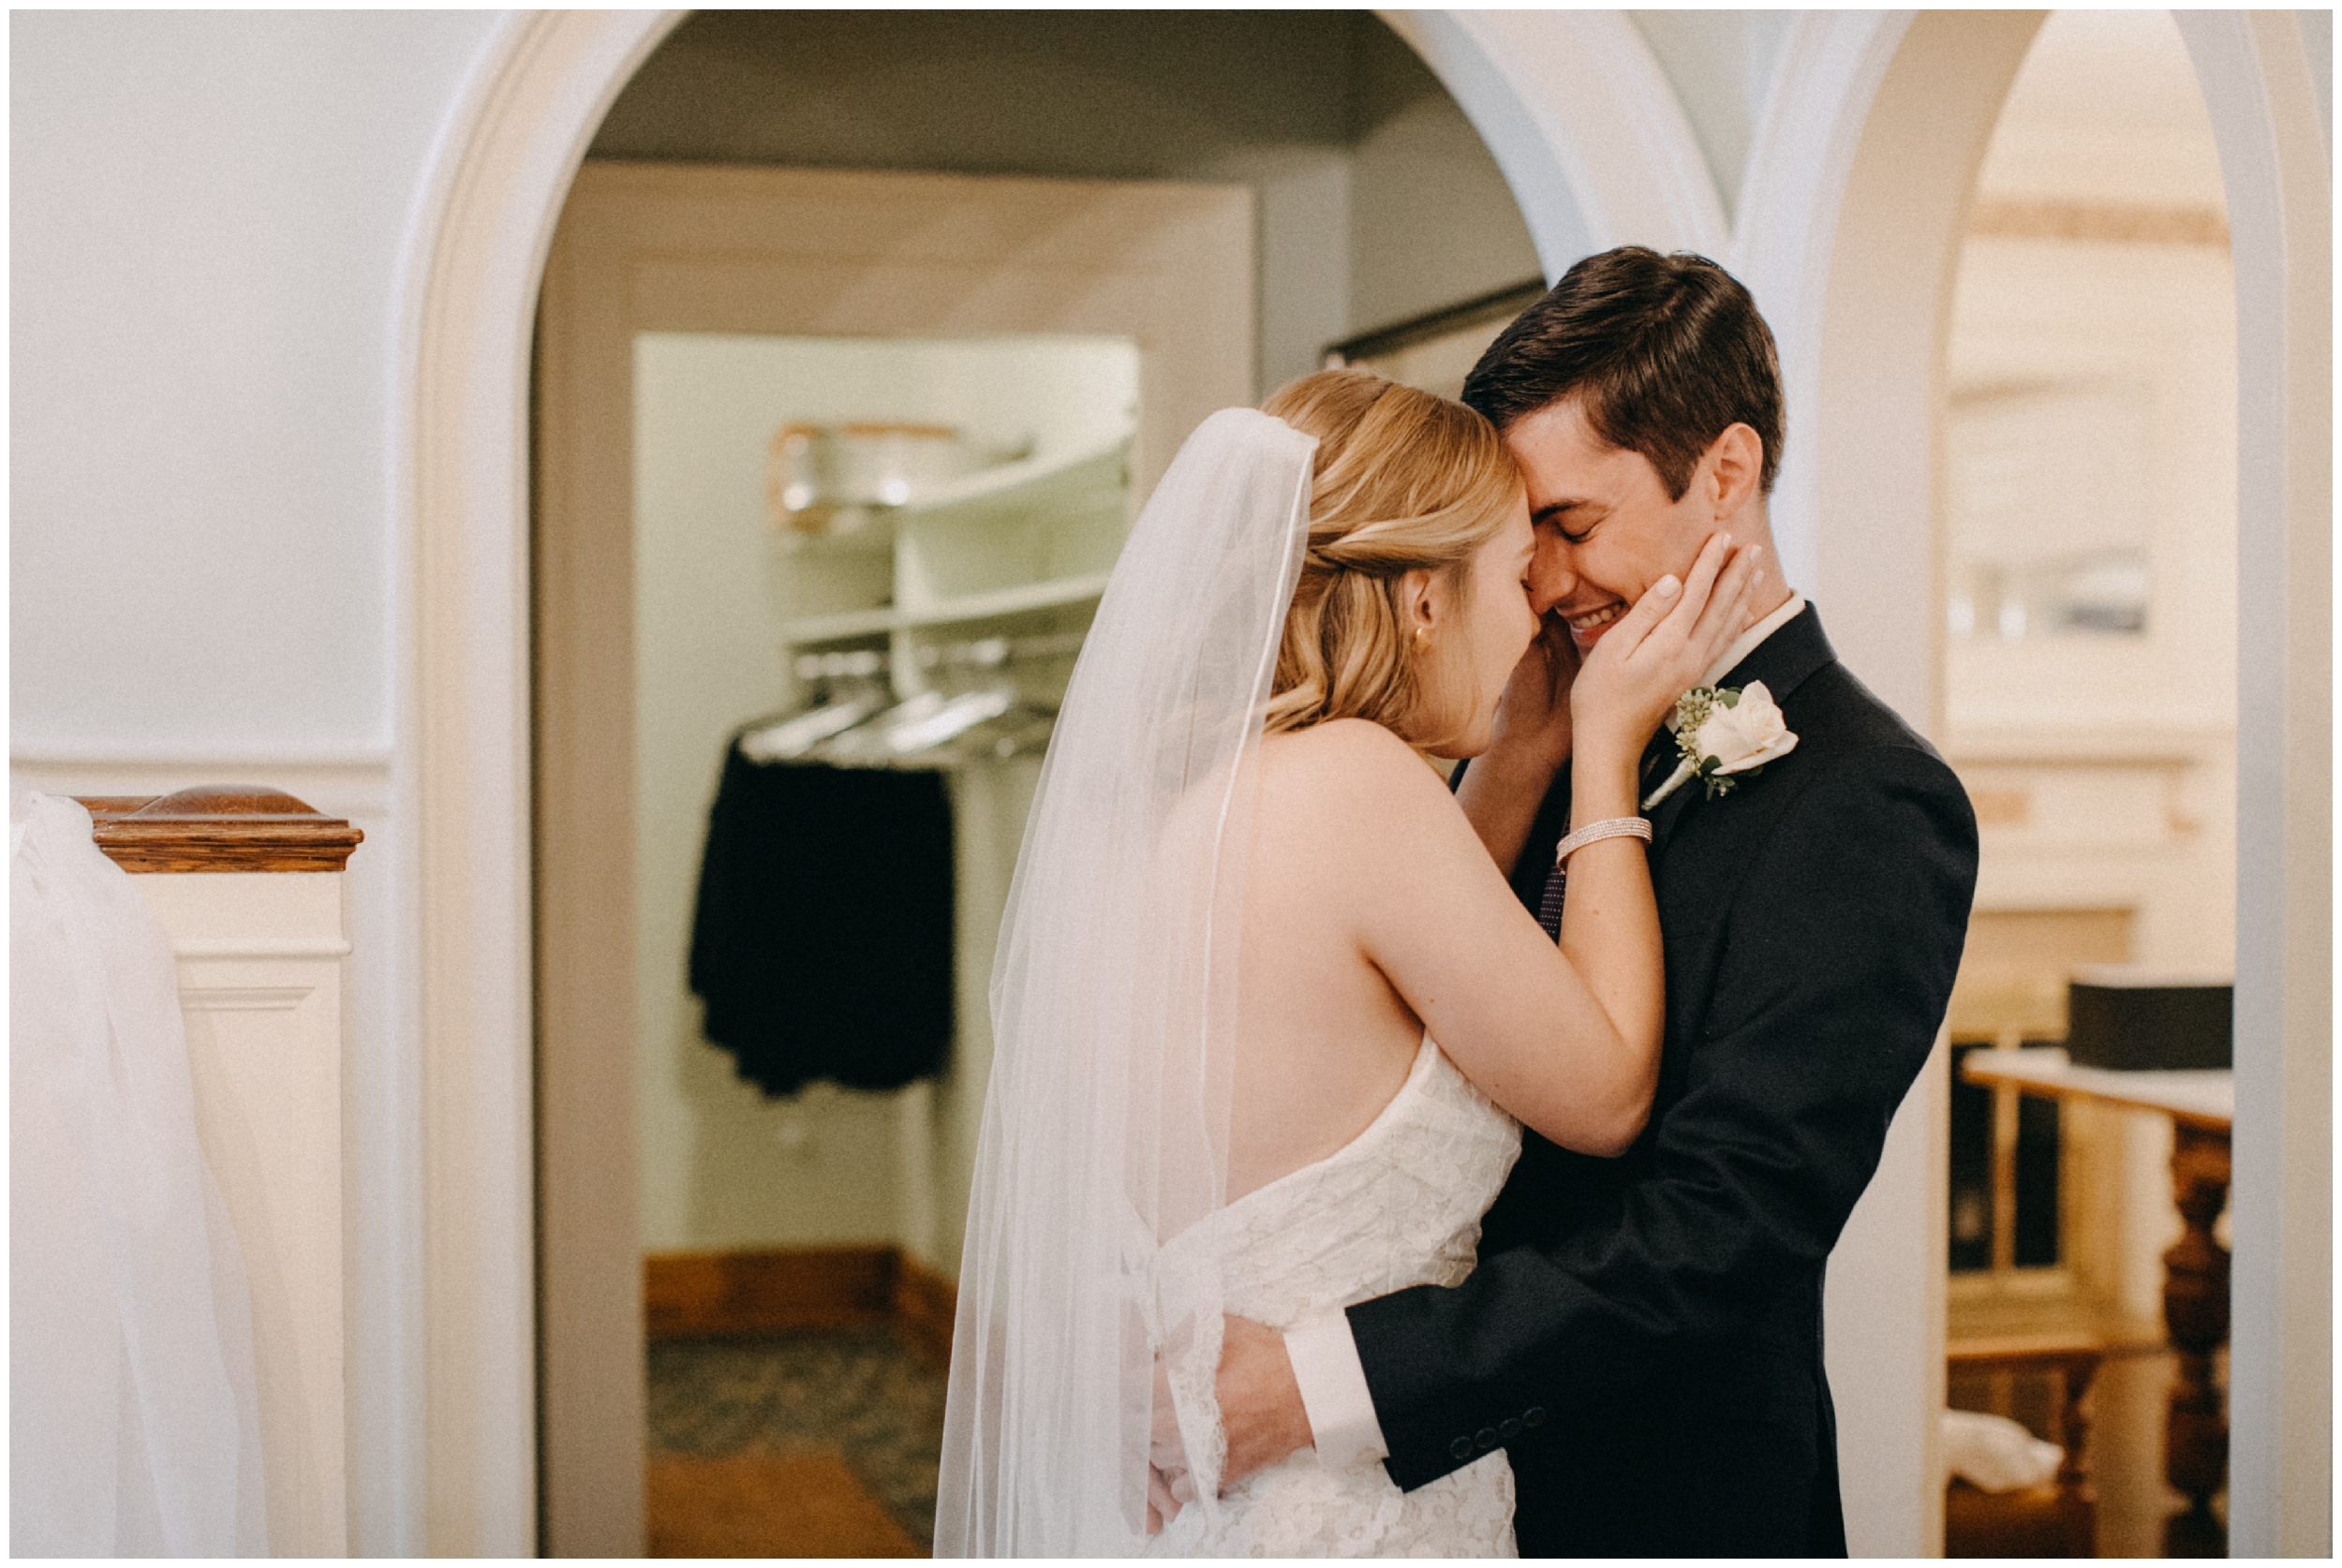 Romantic wedding at the St Paul College club